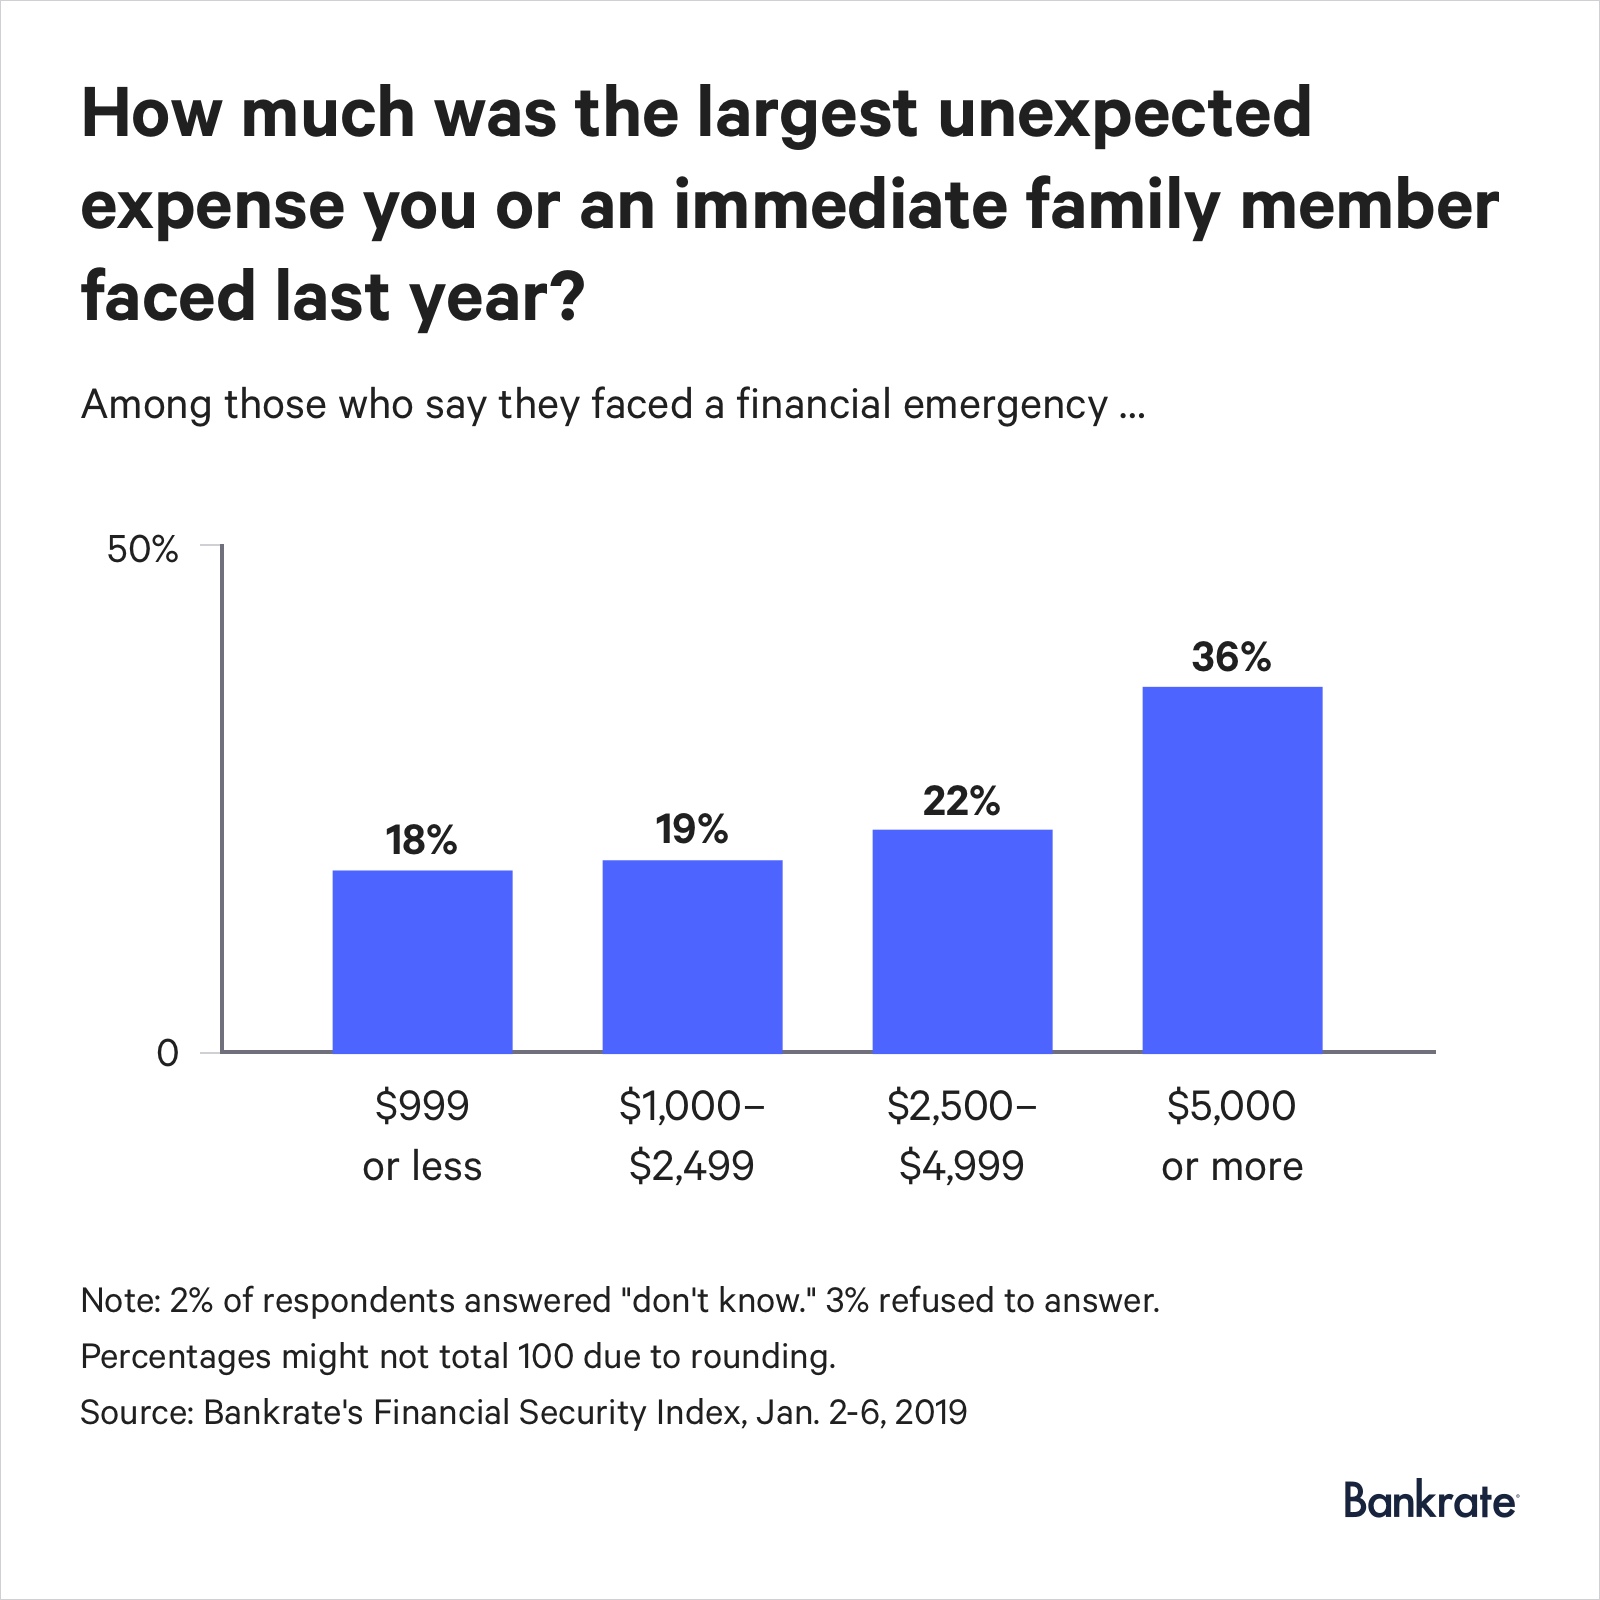 Graph: 36% of those who faced a financial emergency had to spend $5,000 or more